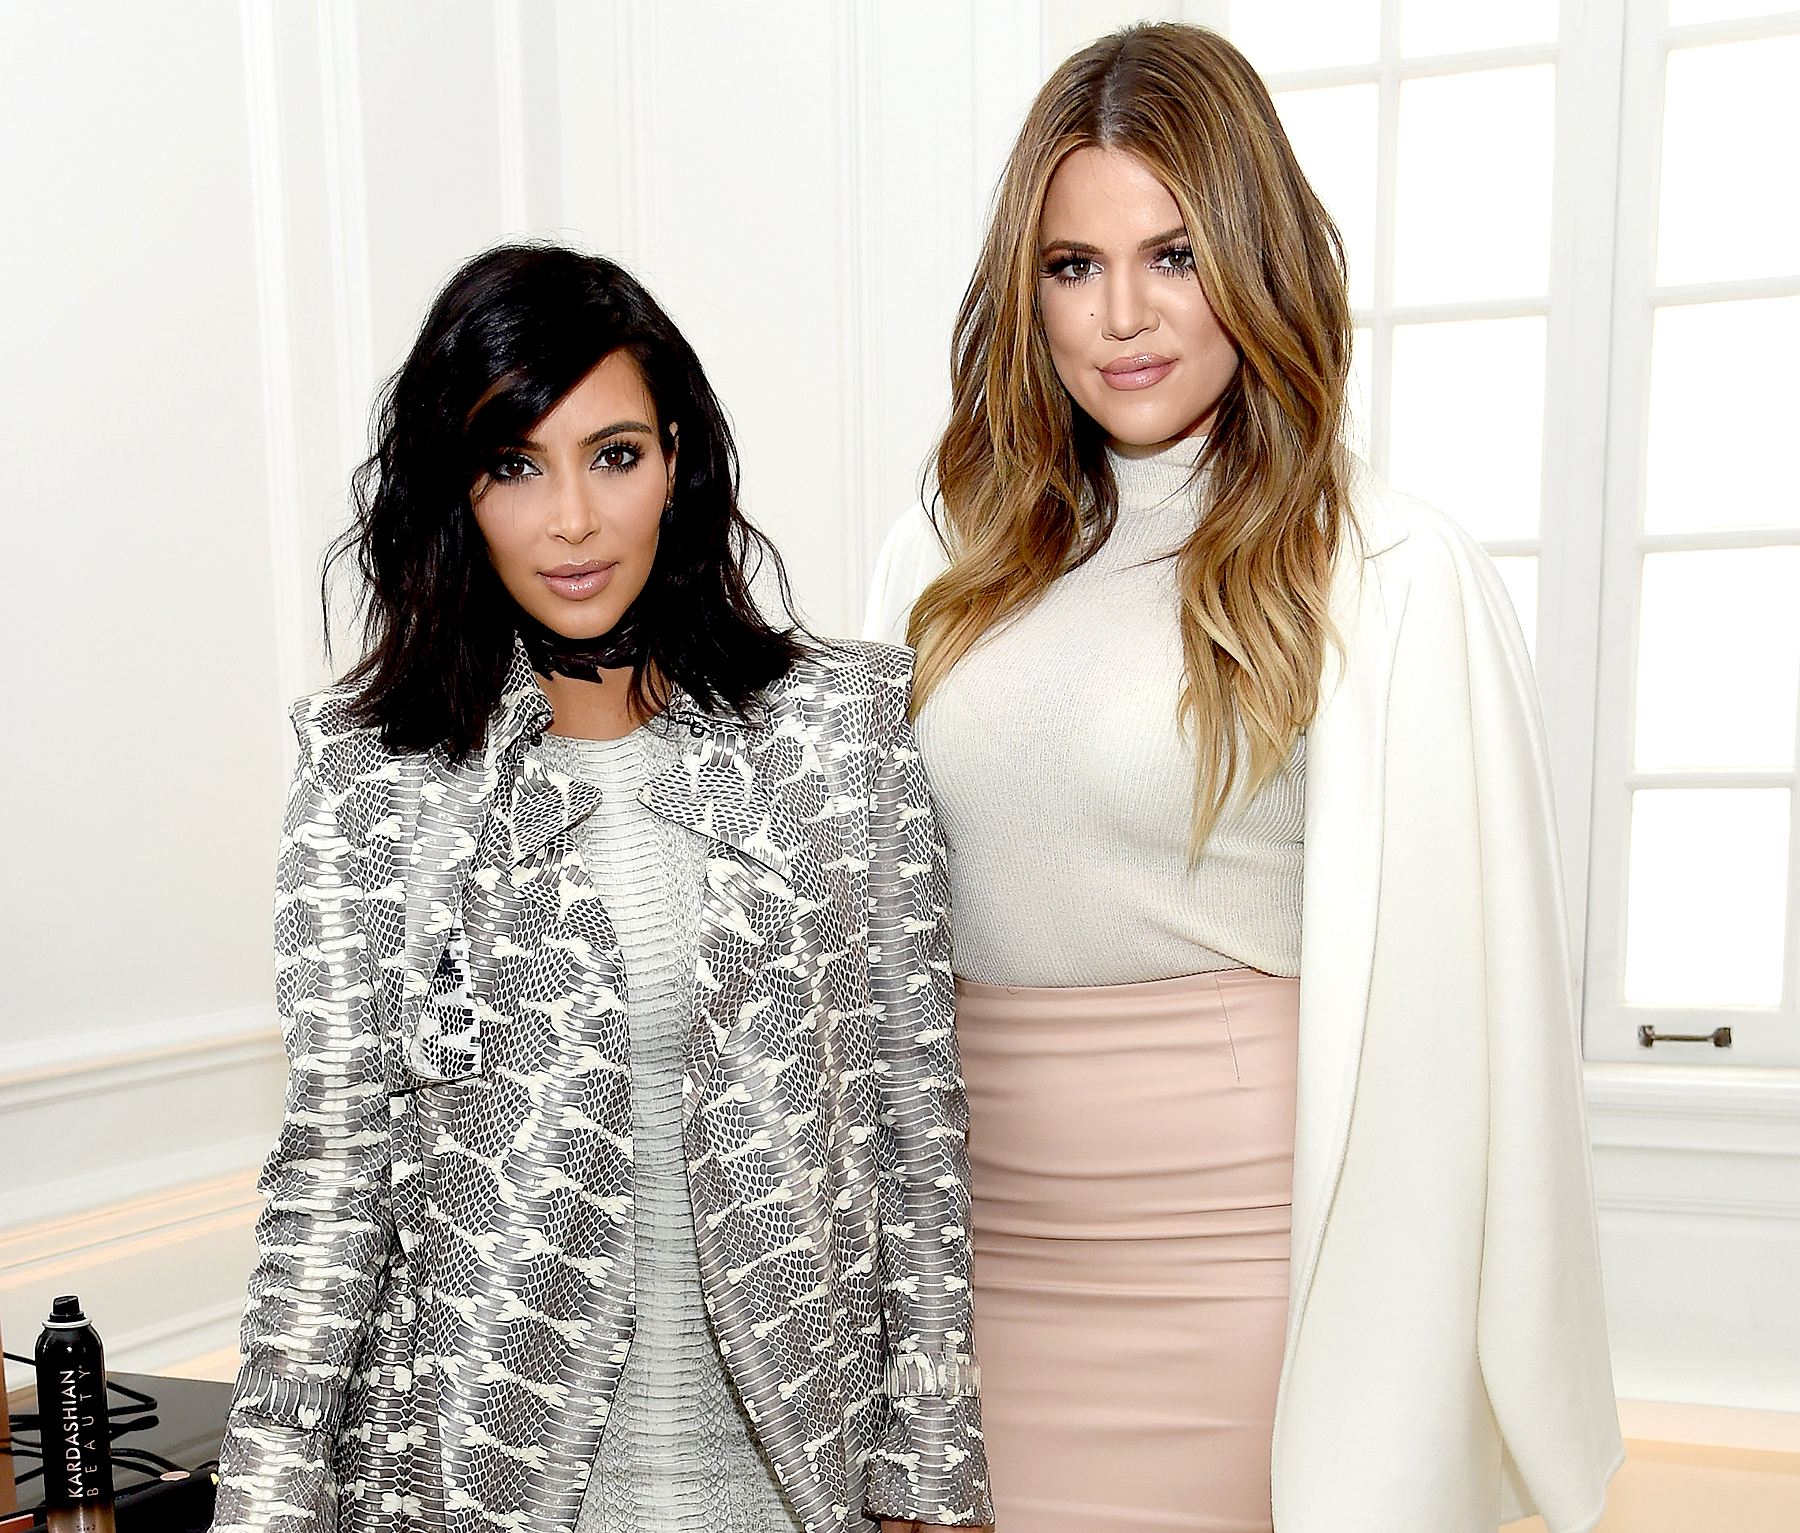 Kim Kardashian West and Khloe Kardashian celebrate the launch of Kardashian Beauty at Academy Mansion on February 10, 2015 in New York City.